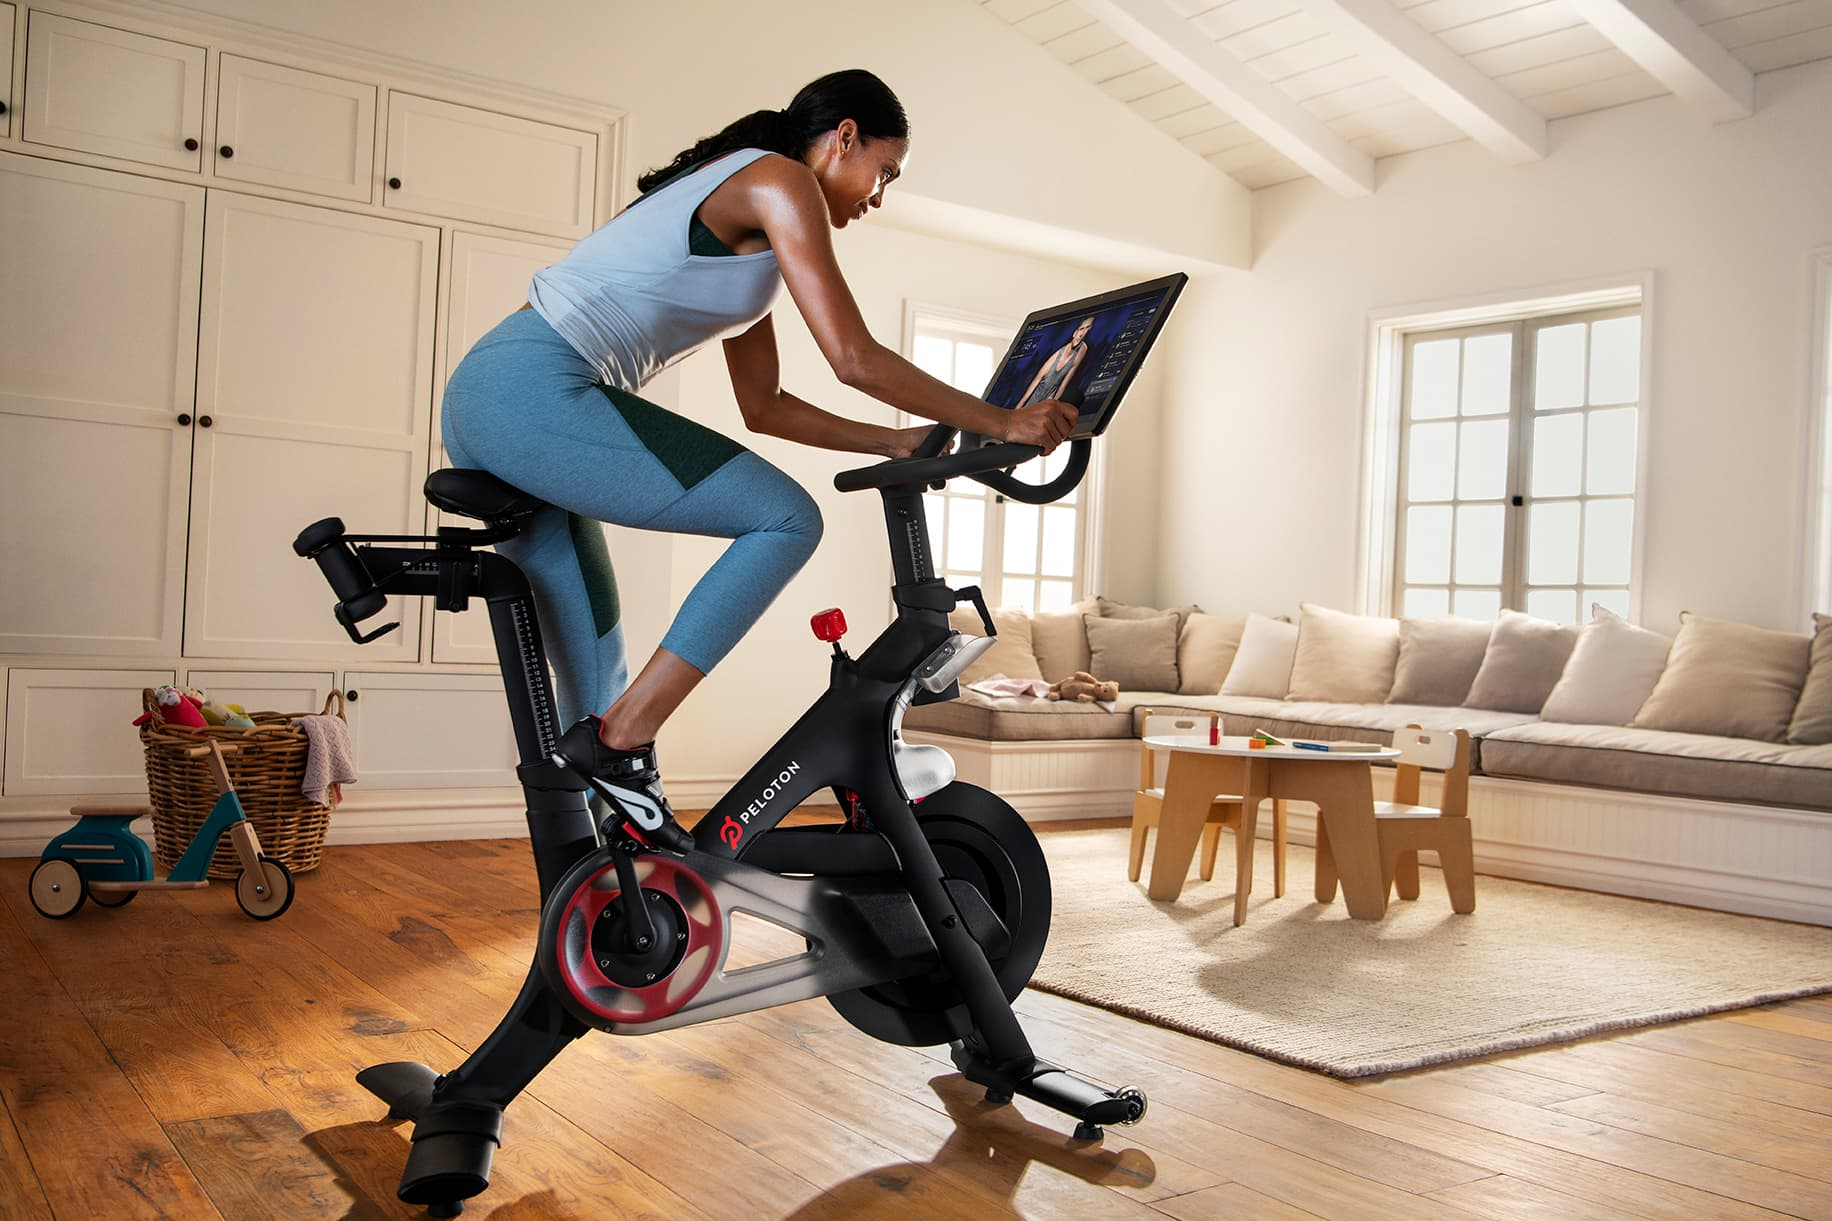 Here's why some Peloton users love that ad so many have criticized